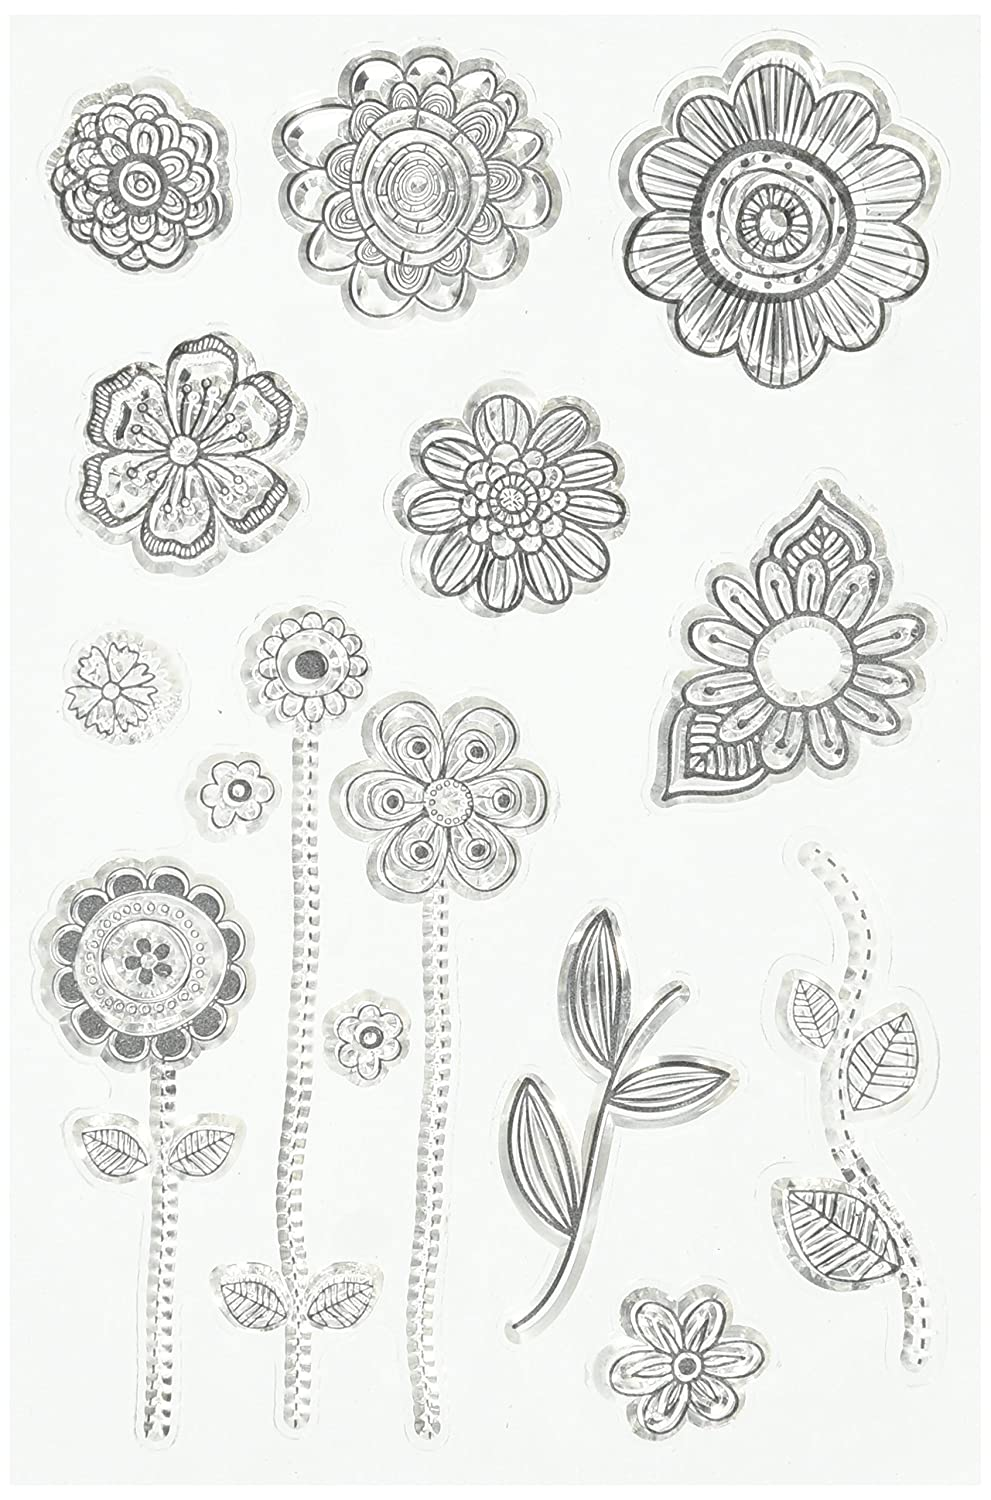 Bo Bunny 12105441 260411 Stamps, Doodle Blooms Notions